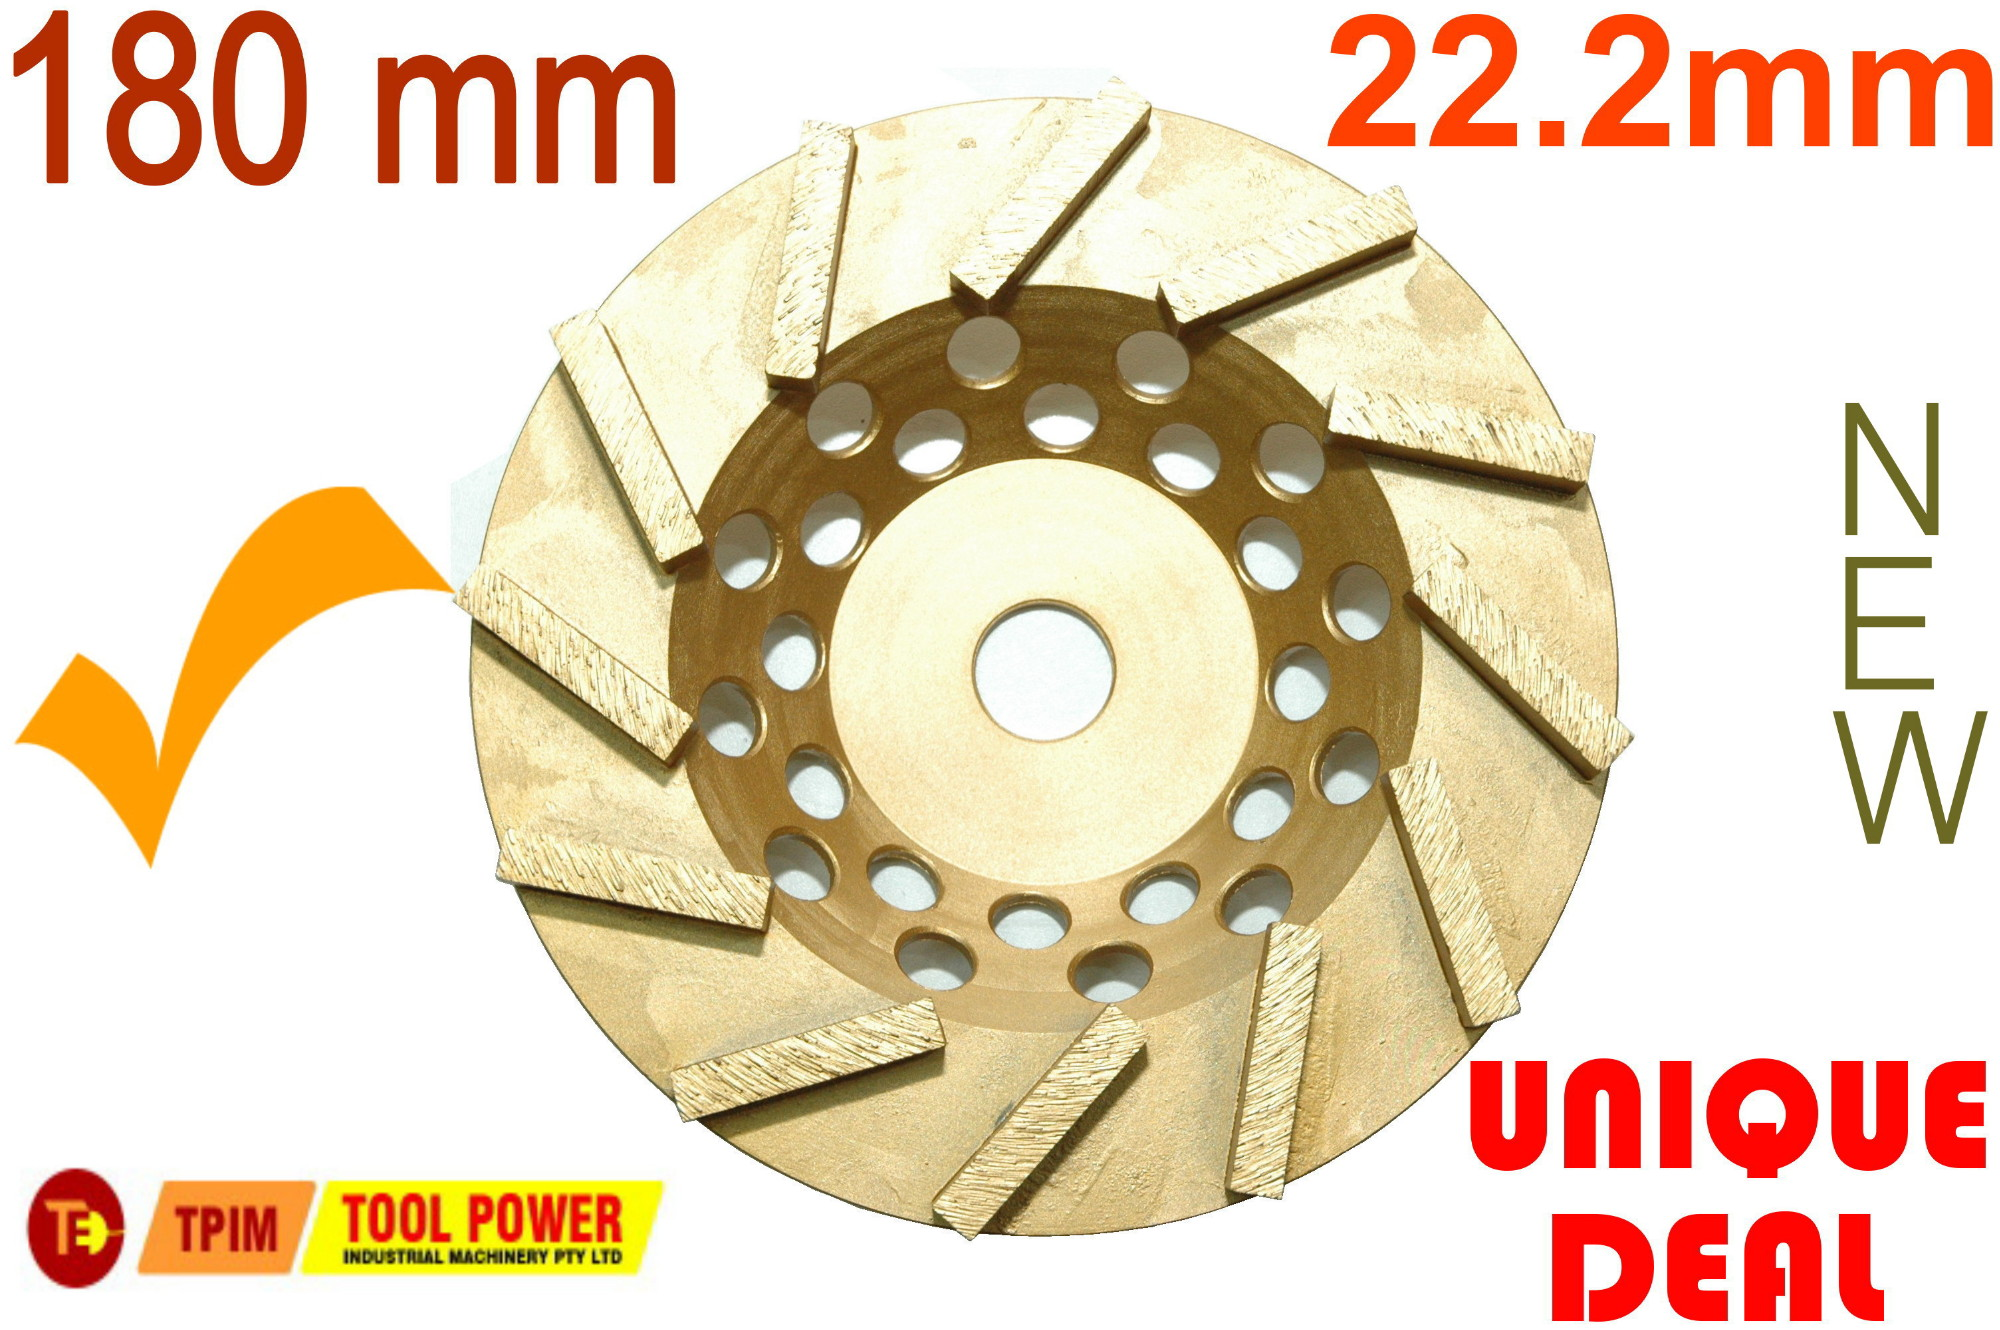 Concrete Grinding Wheel 180mm by Tool Power